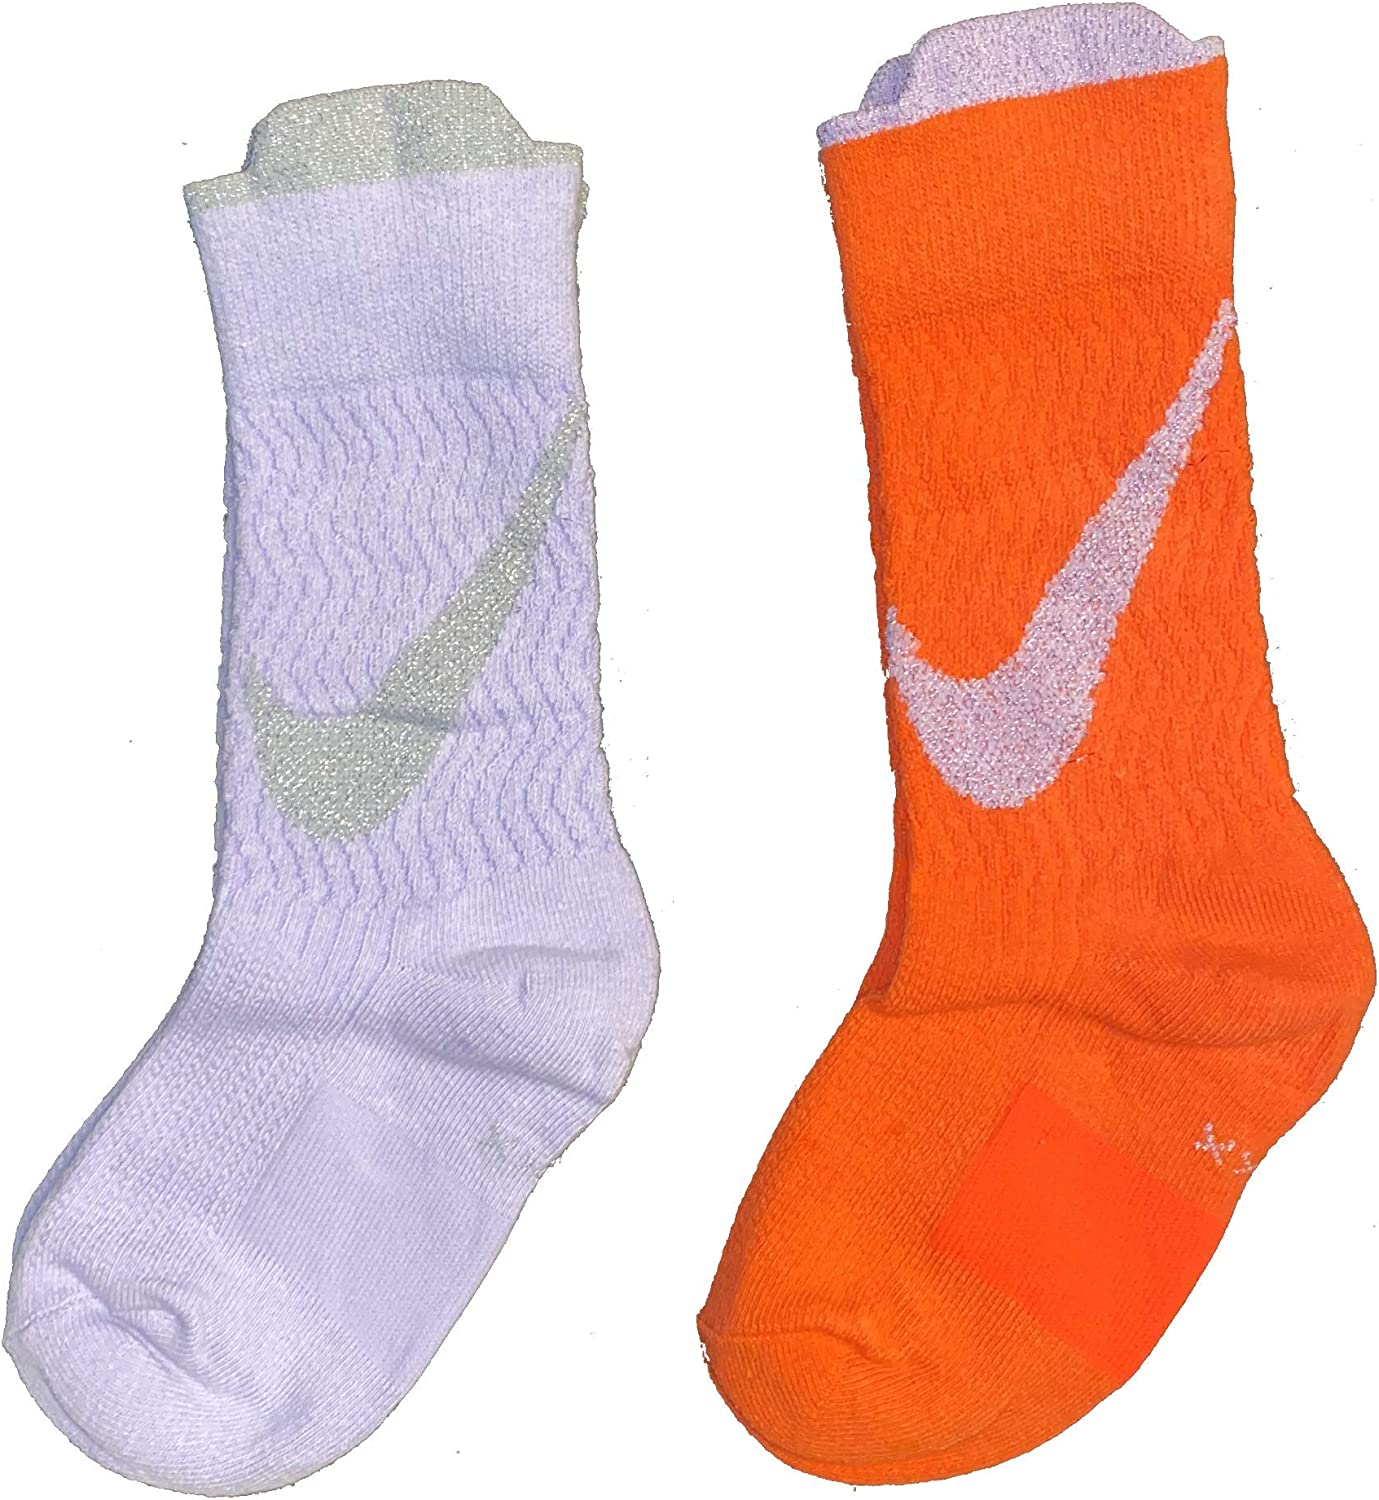 Pensar en el futuro Cambio Confundir  Amazon.com: Nike Toddler Girl's Crew Socks (2 Pairs), Shoe Size 7C-10C/4-5  (Sock Size): Clothing